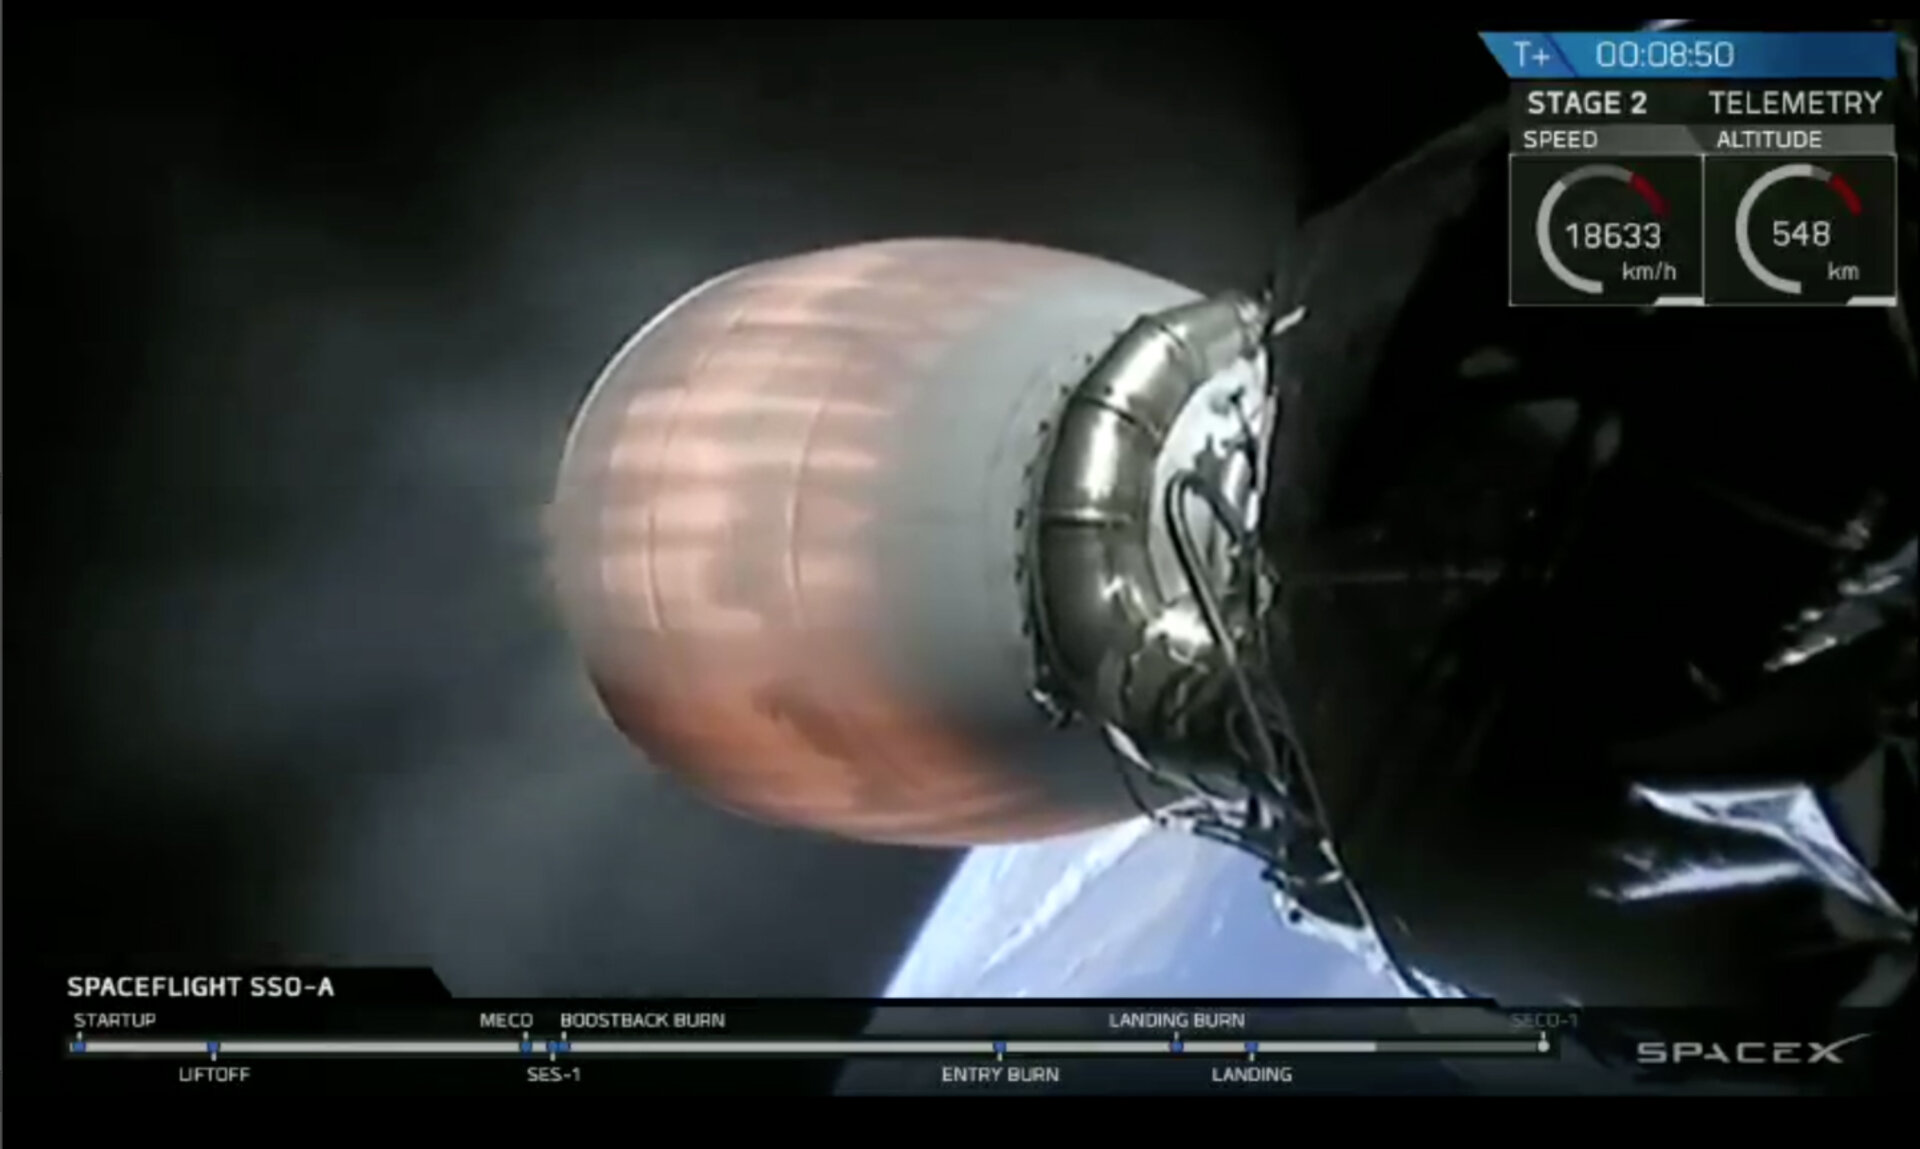 Second stage of the SpaceX Falcon9 rocket